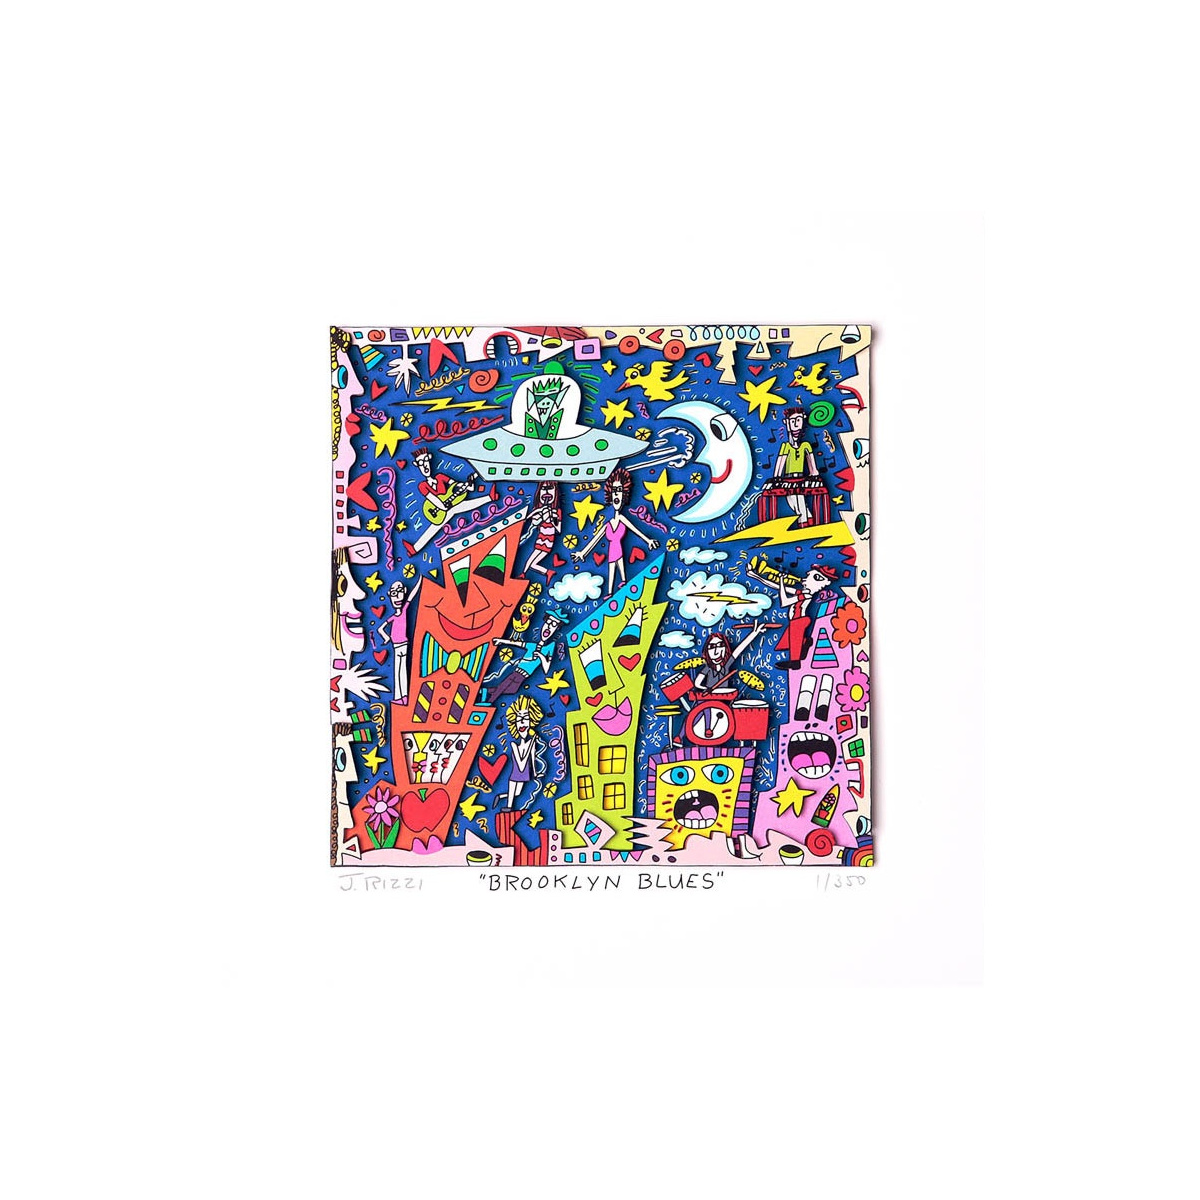 Brooklyn blues von James Rizzi